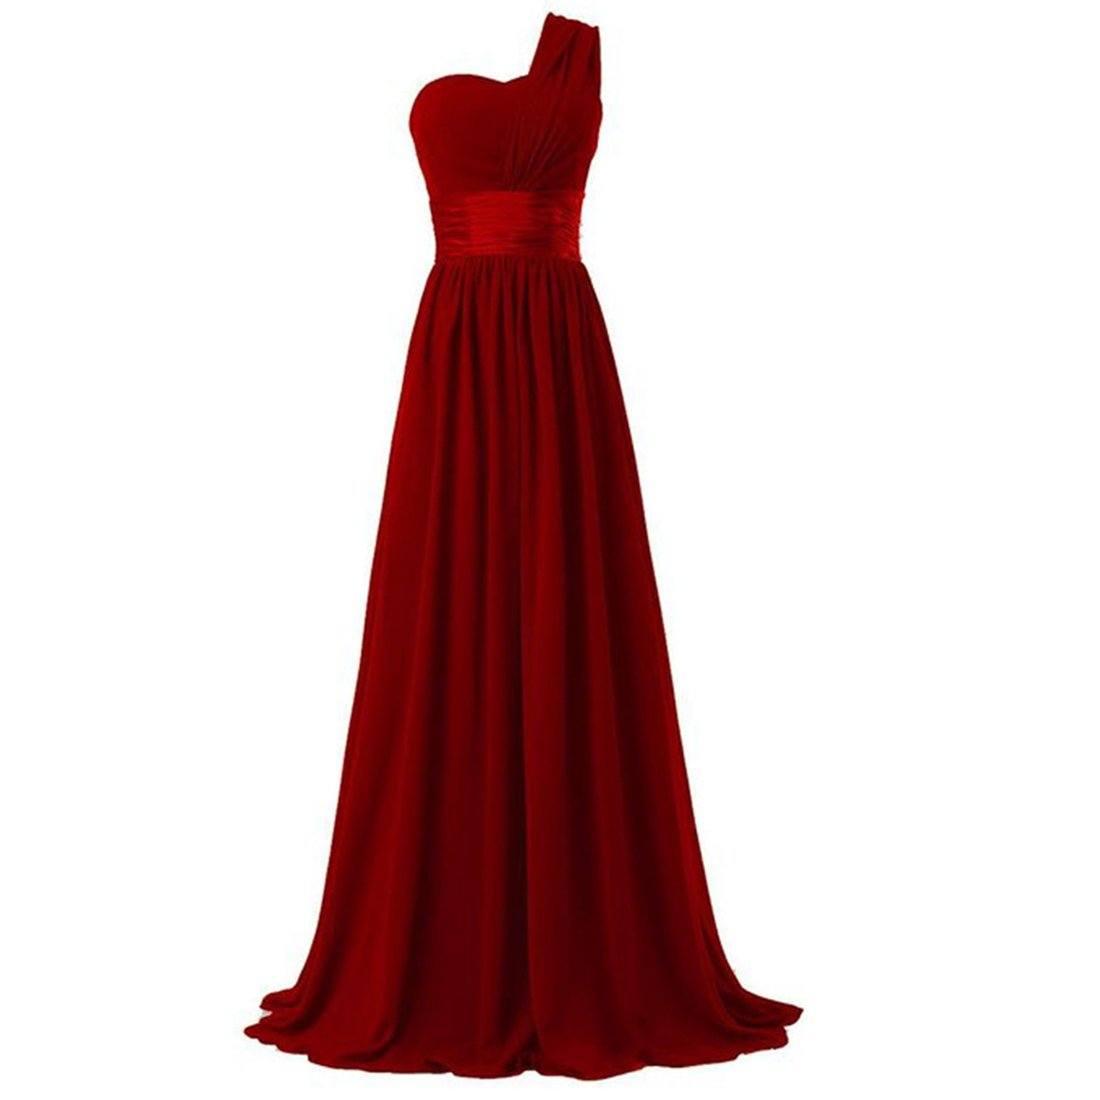 HAWEE Womens One Shoulder Chiffon Long Evening Dress Floor Length Trailing Bridesmaid Dress